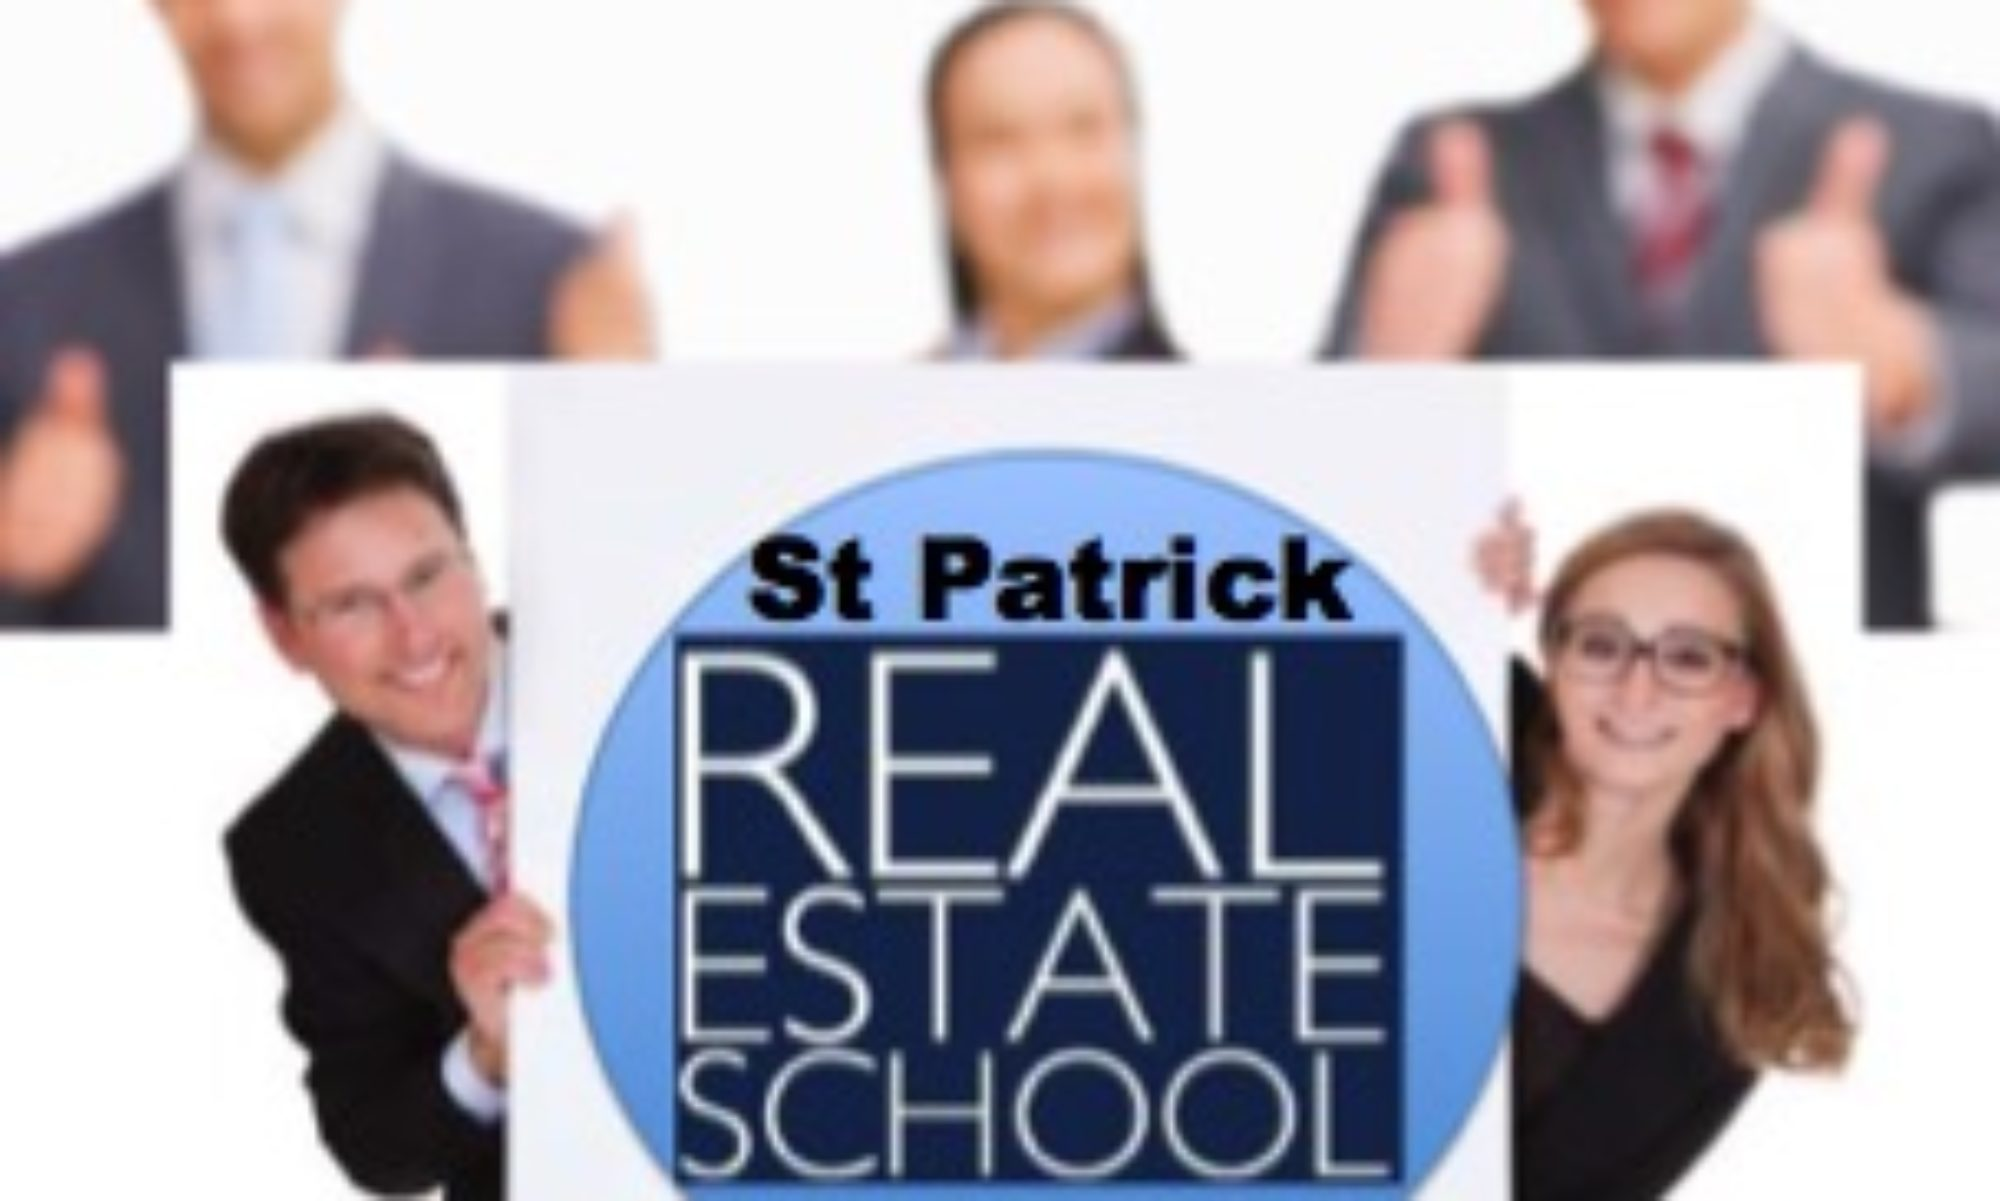 St Patrick Real Estate School Training For The Best Property Agents